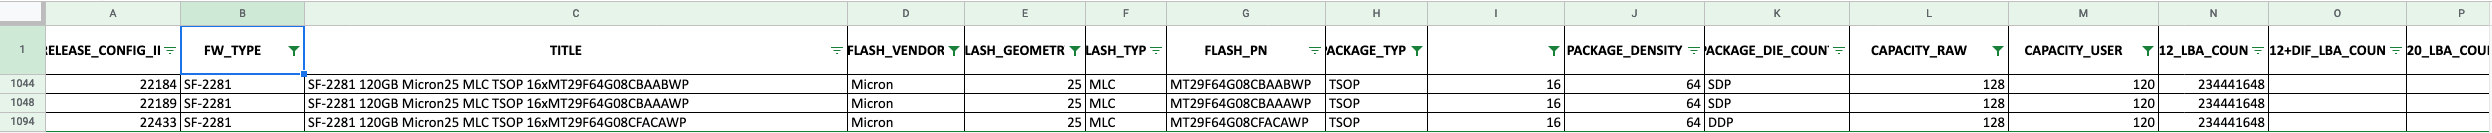 Find config id with secret document to unbrick SSD